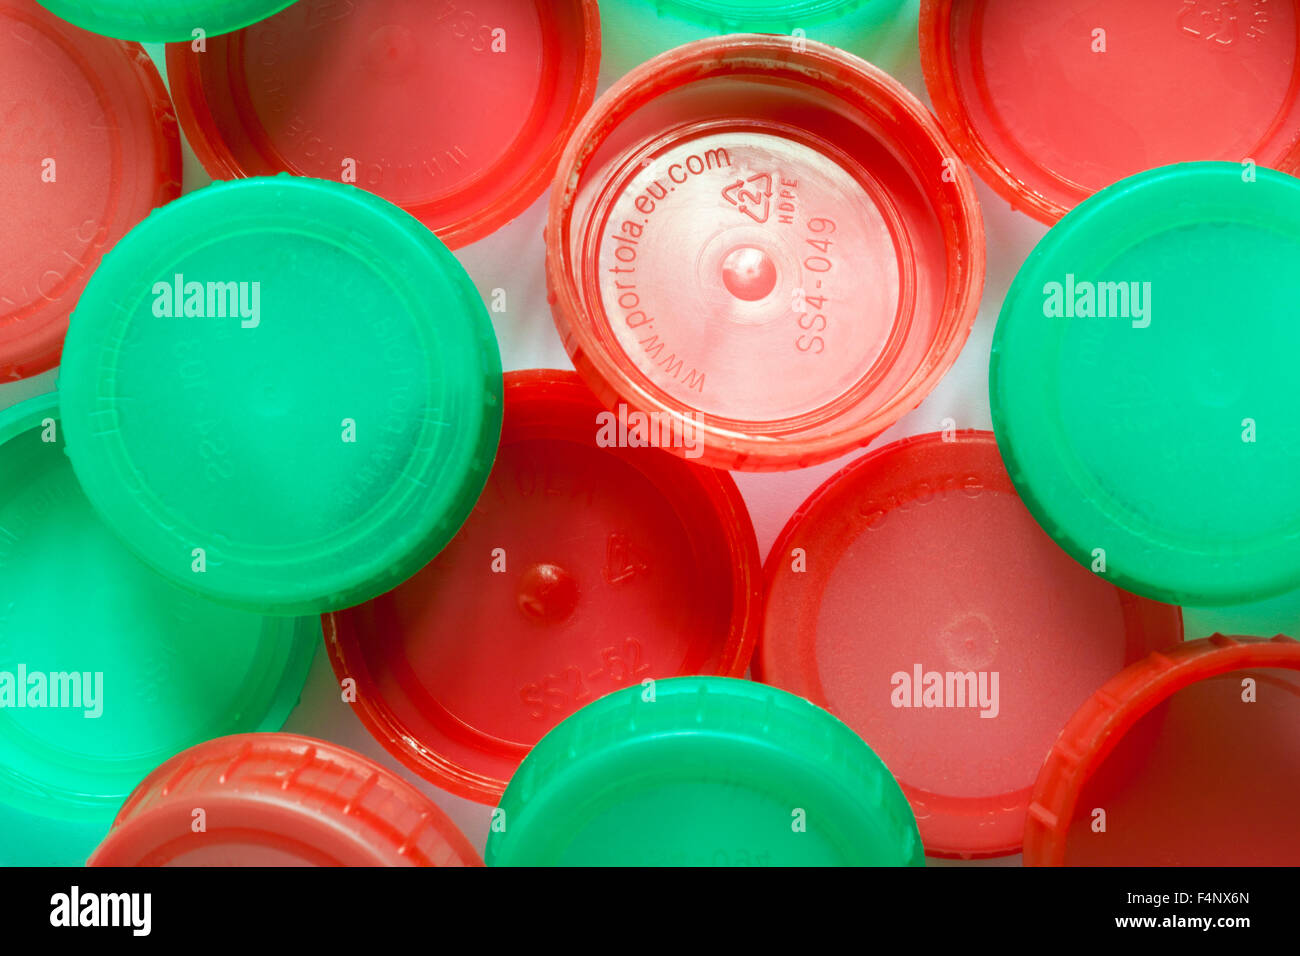 red and green plastic milk bottle tops - Stock Image